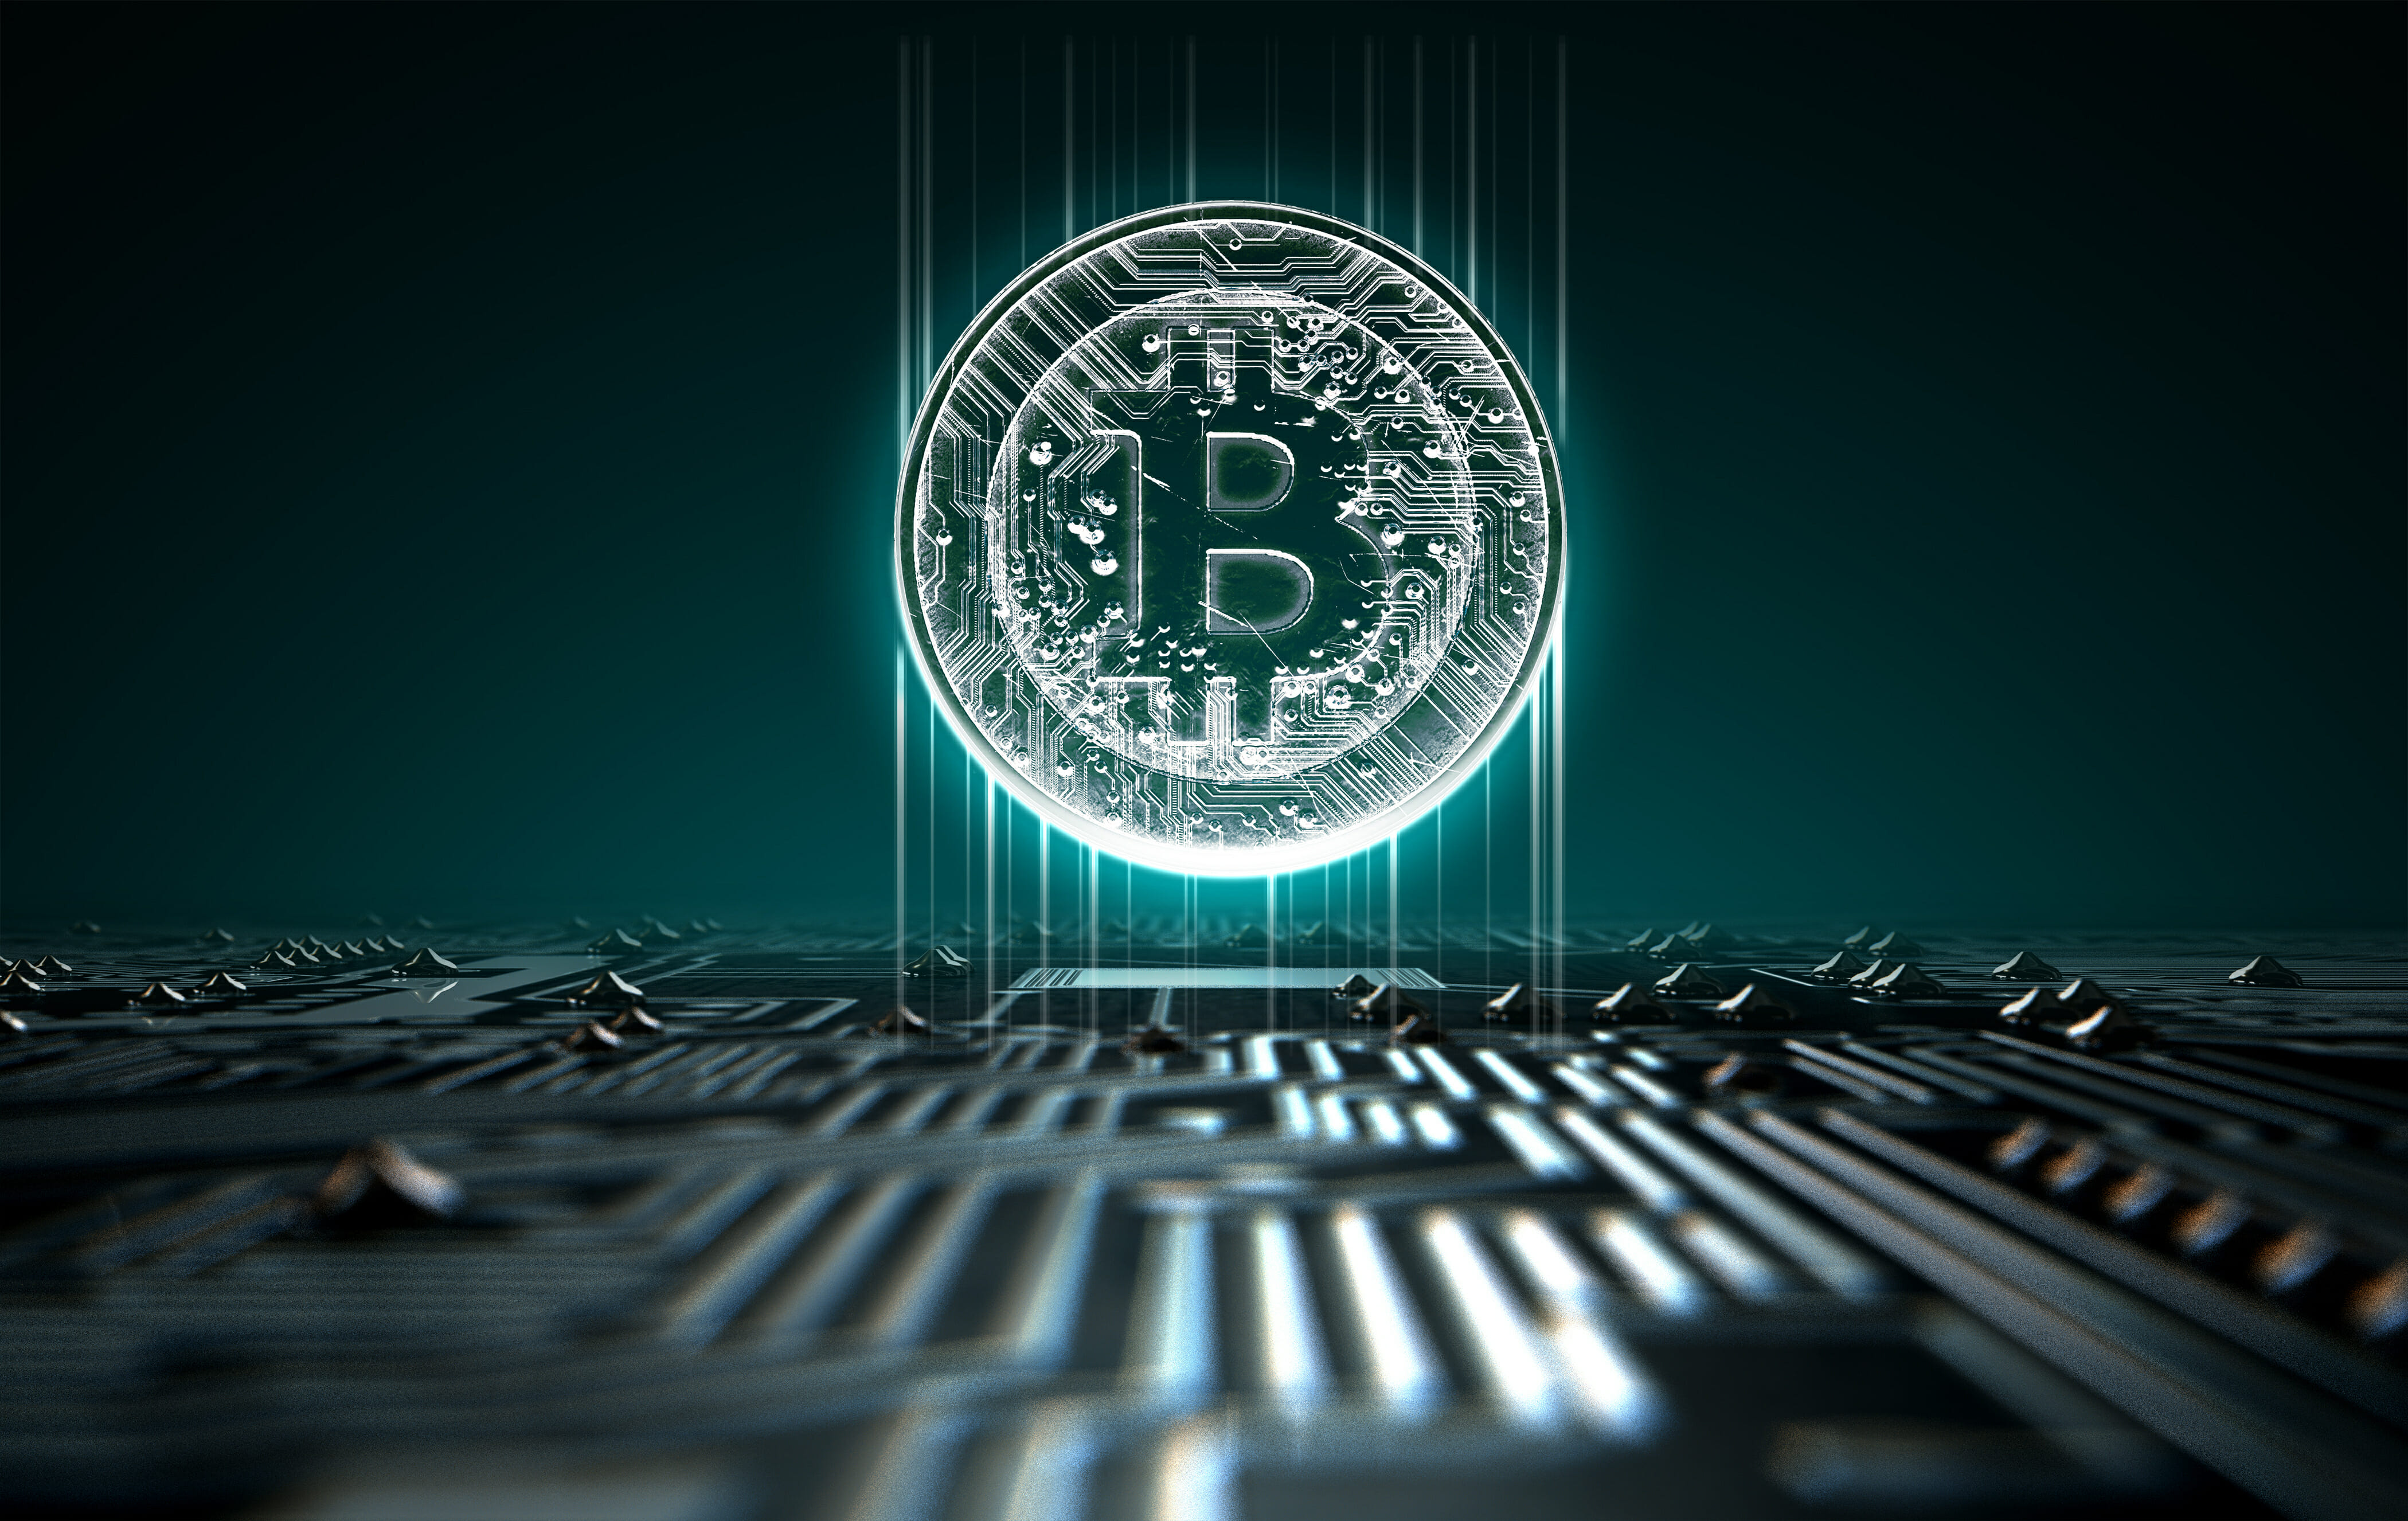 https://www.cryptoworldjournal.com/bitcoin-could-reach-between-usd-130000-and-usd-470000-according-to-large-firms/#respond